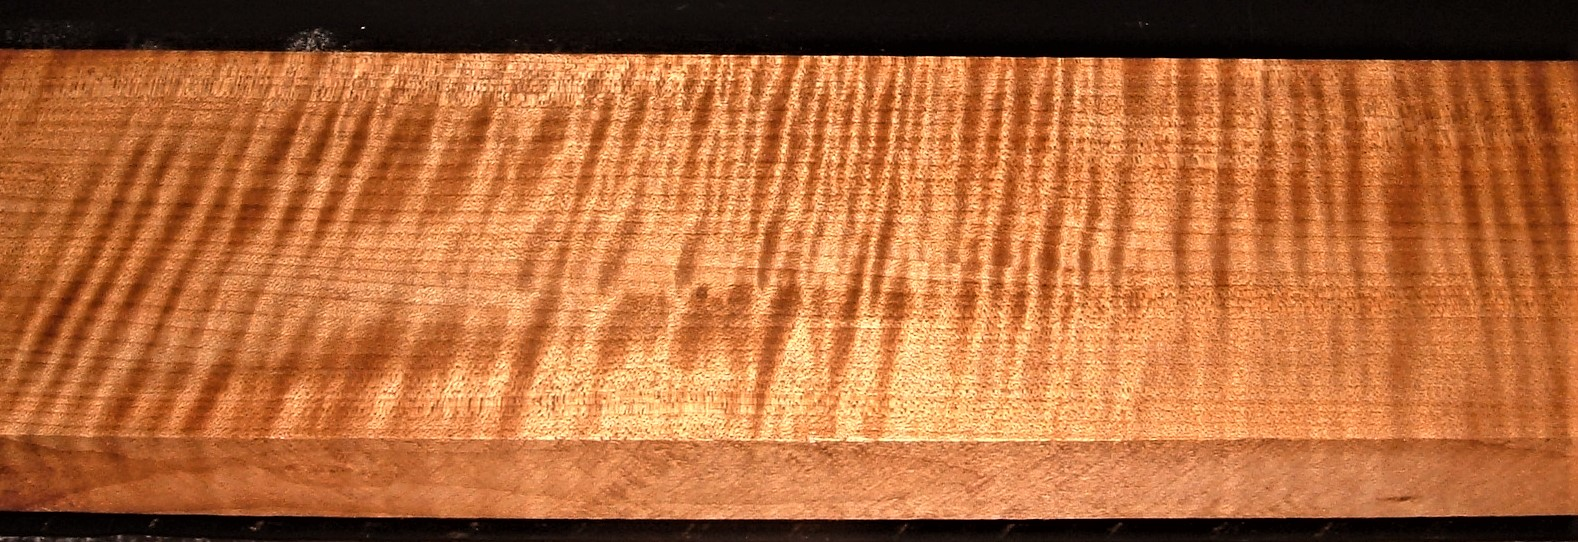 QRM2009-235JK, 1-1/8x4-7/8x47, Roasted Torrefied, Curly Tiger Quartersawn Maple